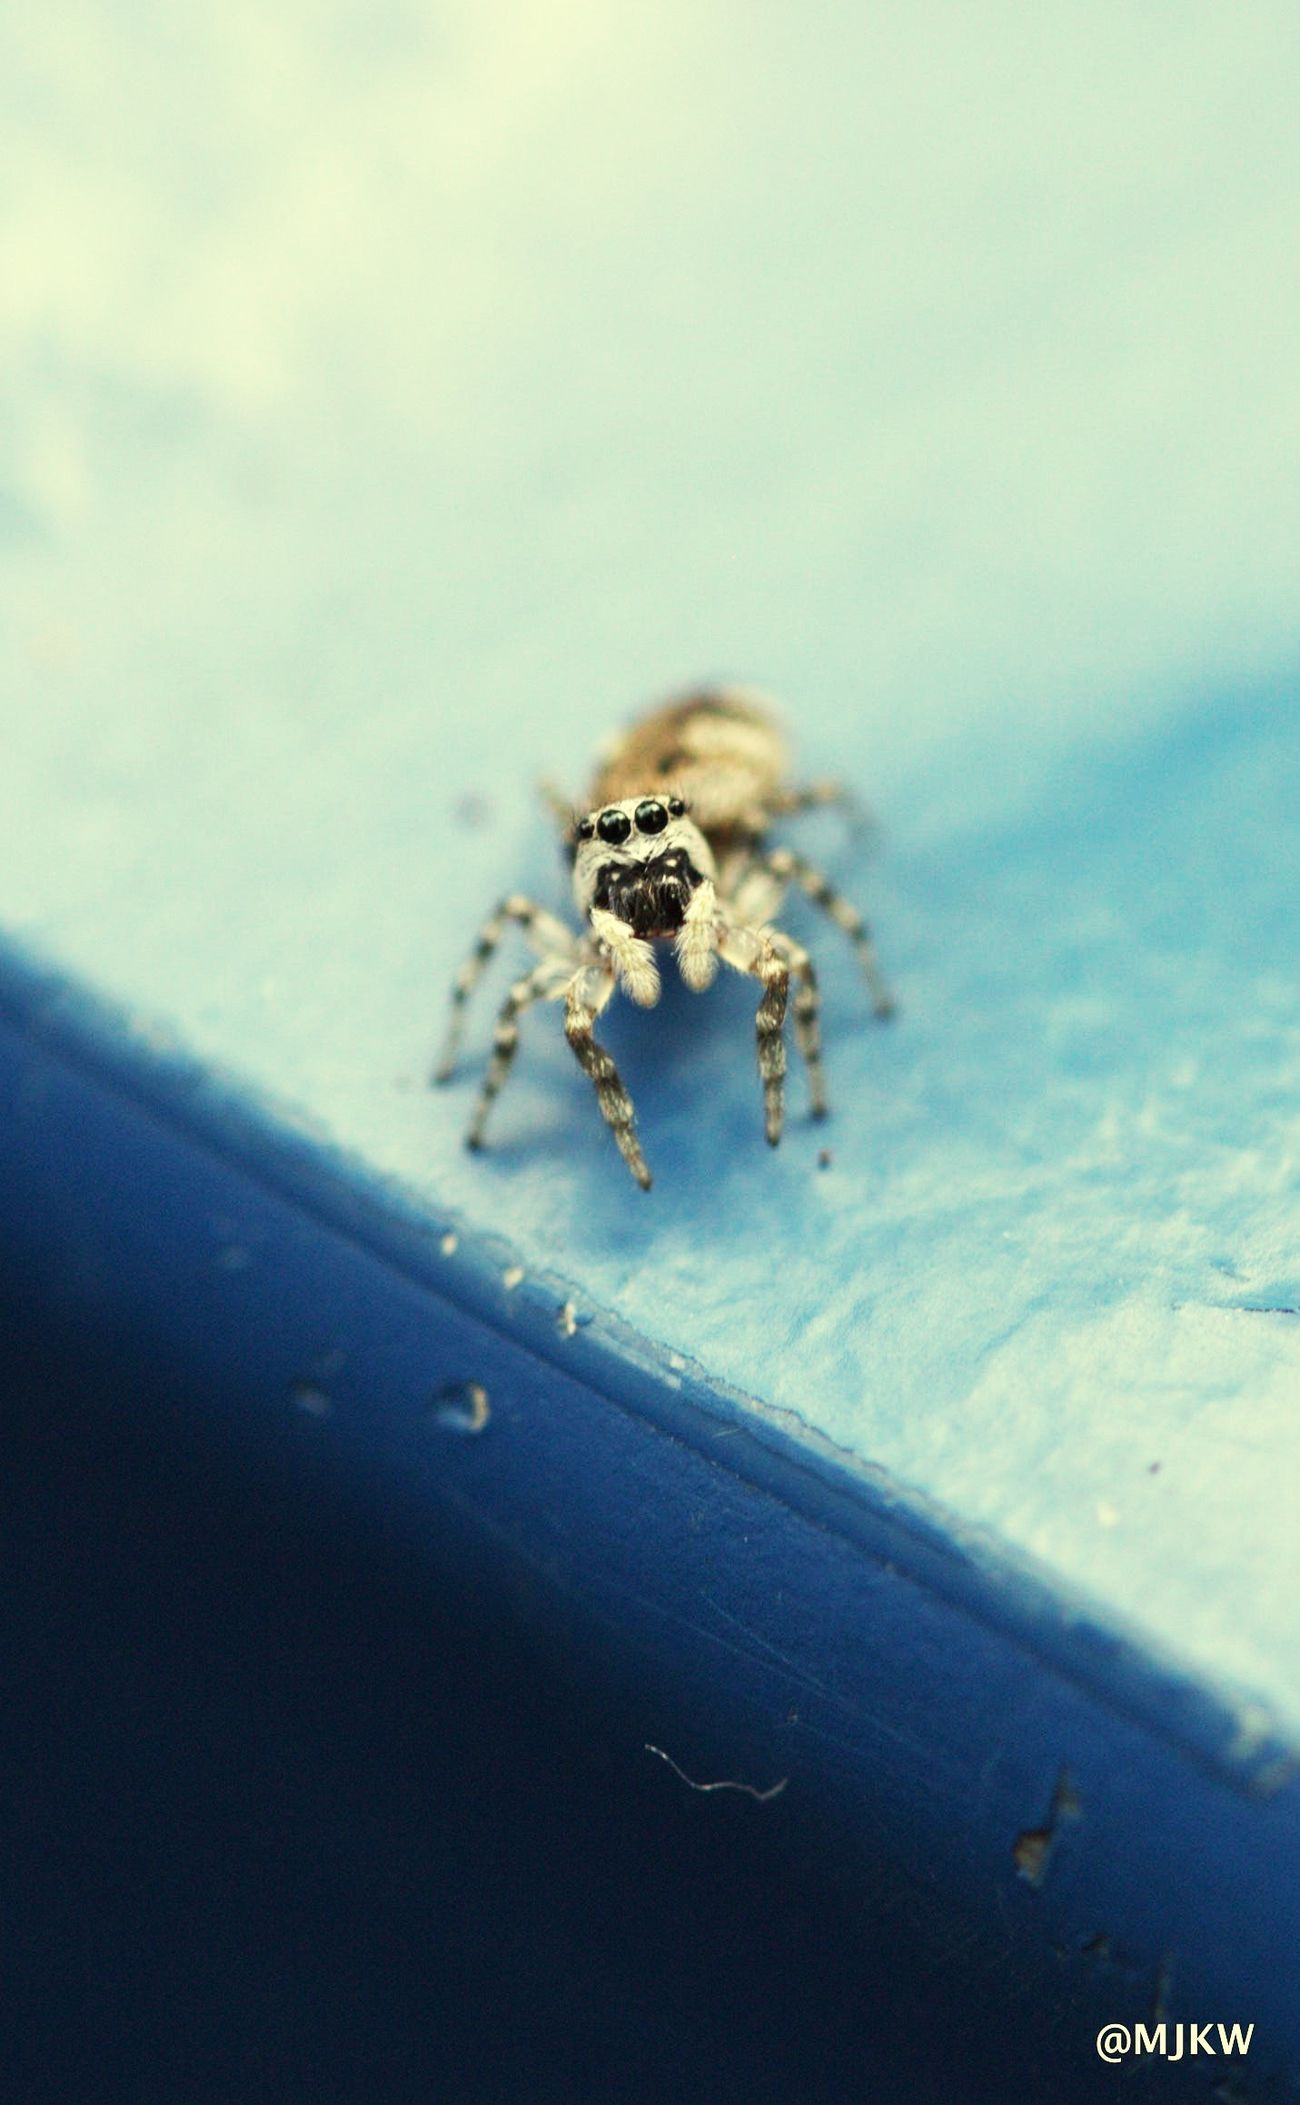 Hoi! Animals In The Wild Animal Themes Close-up Spider No People Outdoors Nature Jumping Spider Place Of Heart Beauty In Nature Focus On Foreground Wildlife & Nature